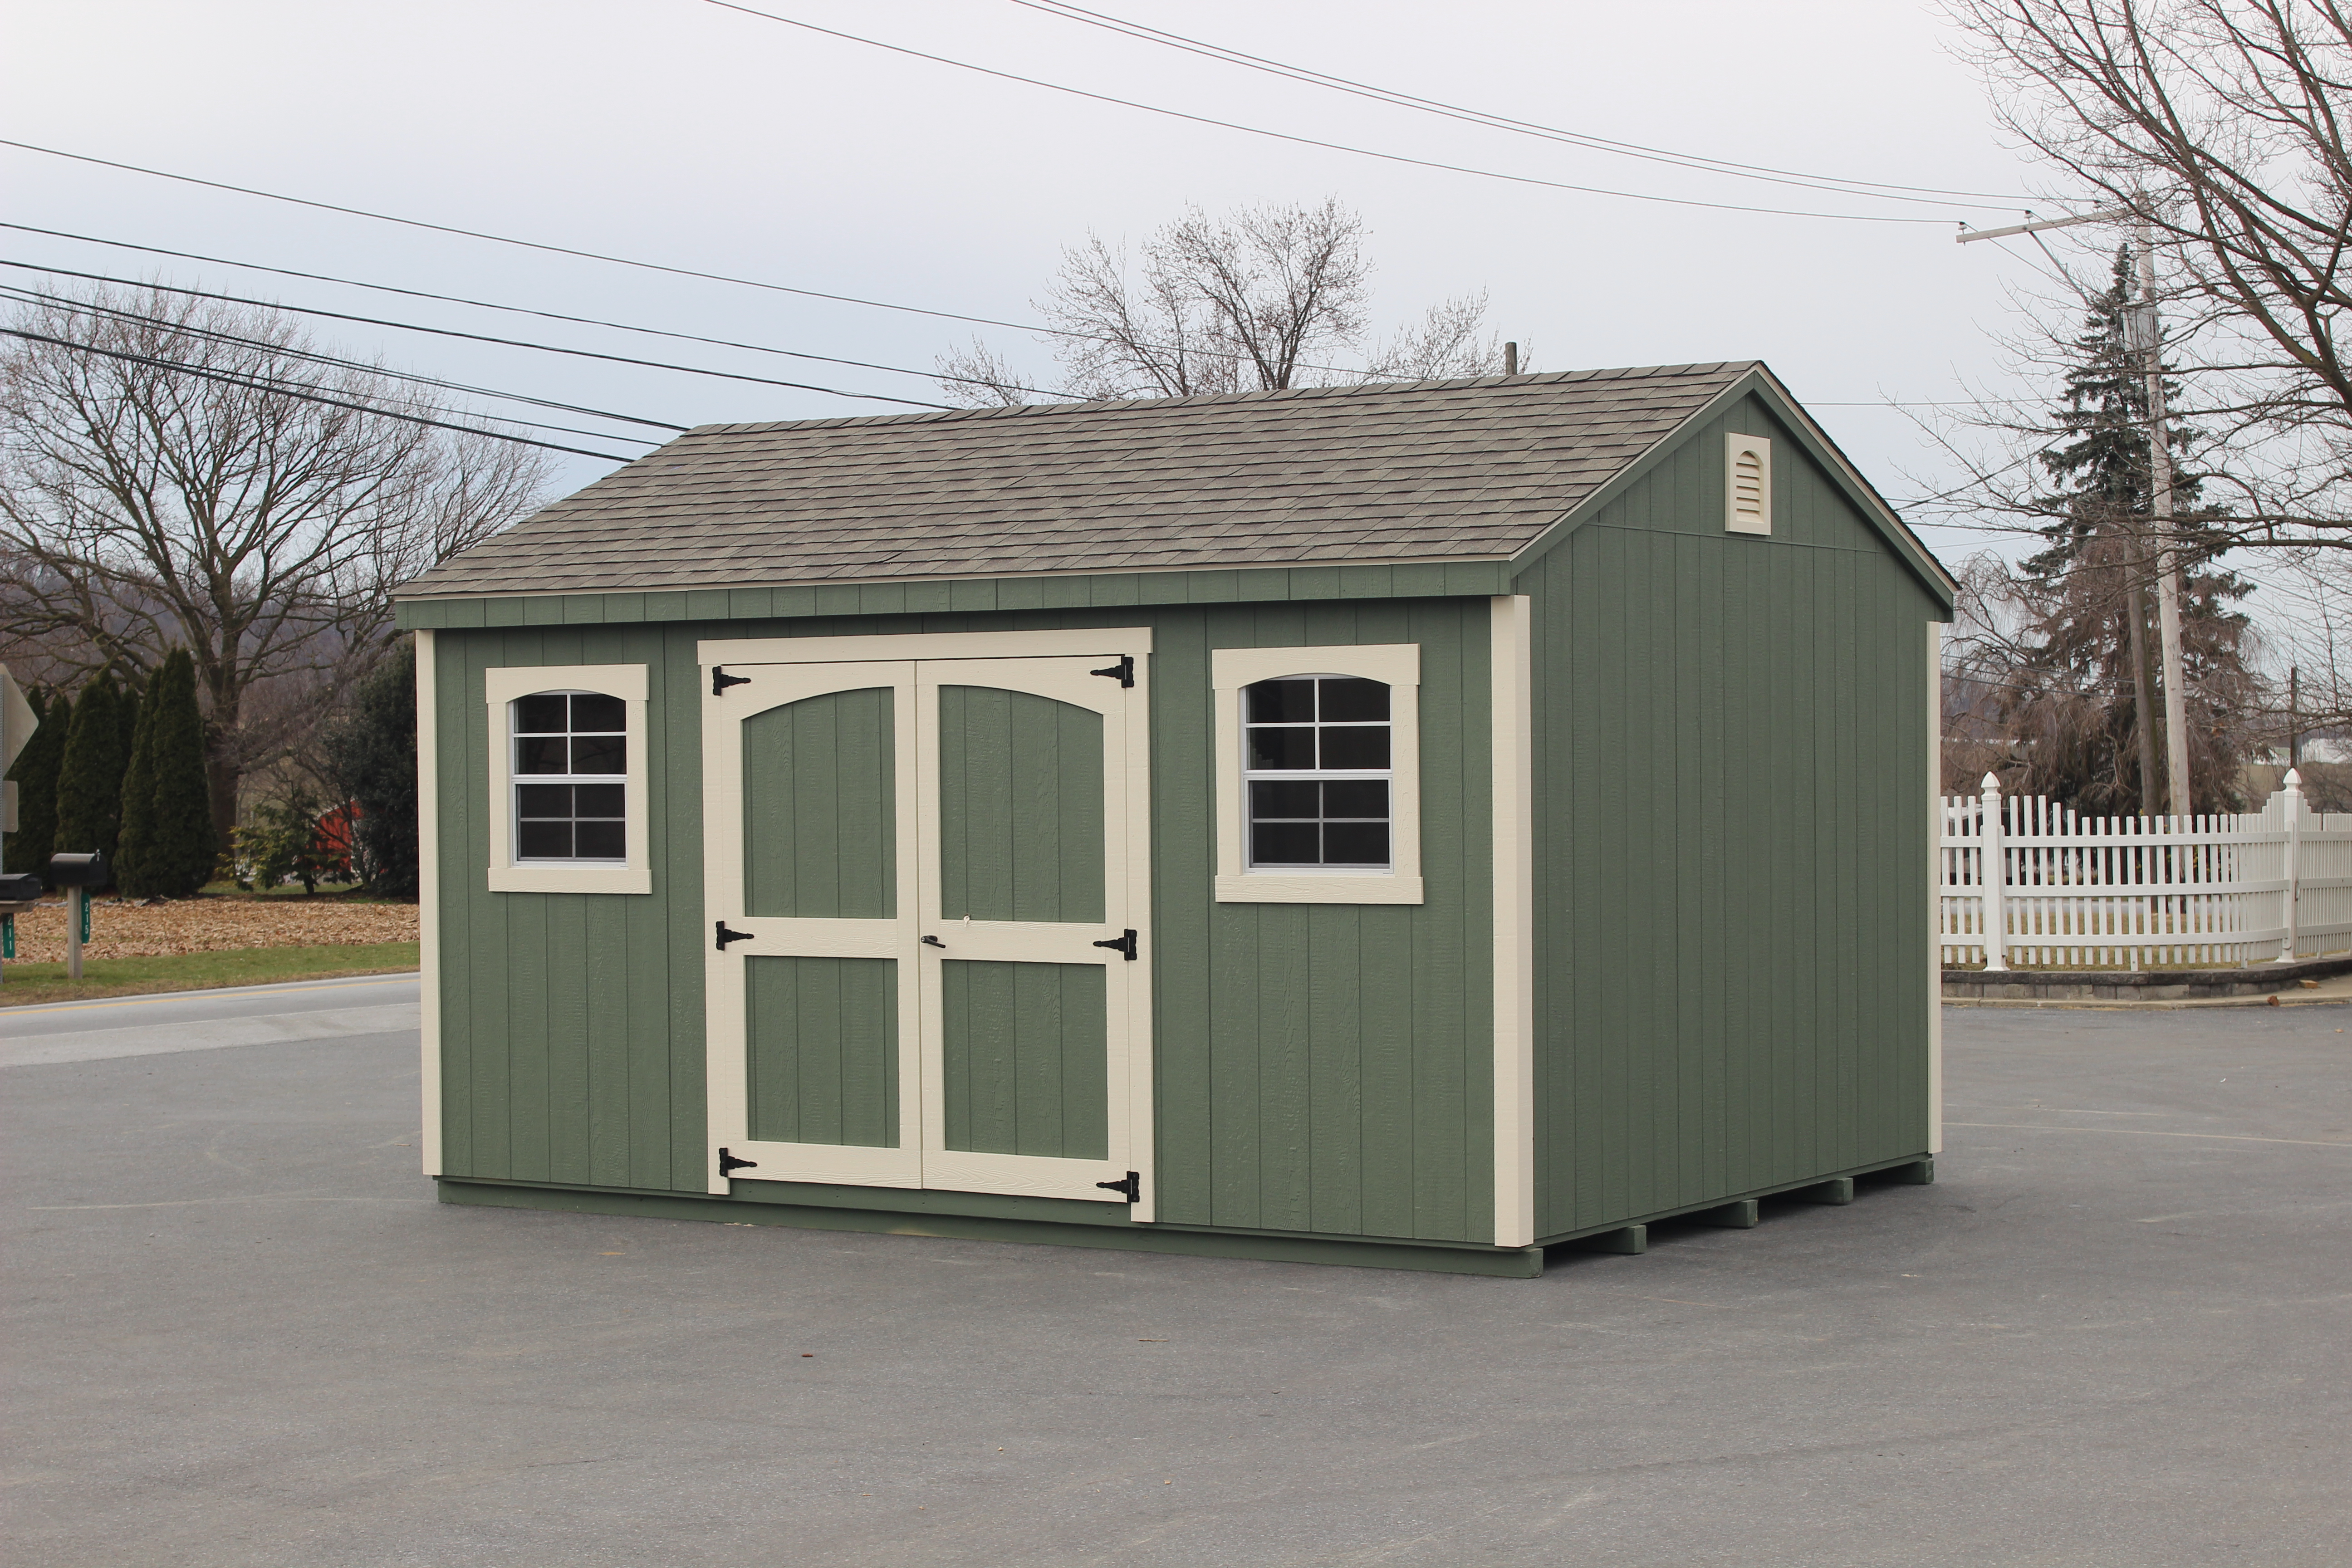 EXPRESS SHEDS | Quality Amish-Built Storage Sheds